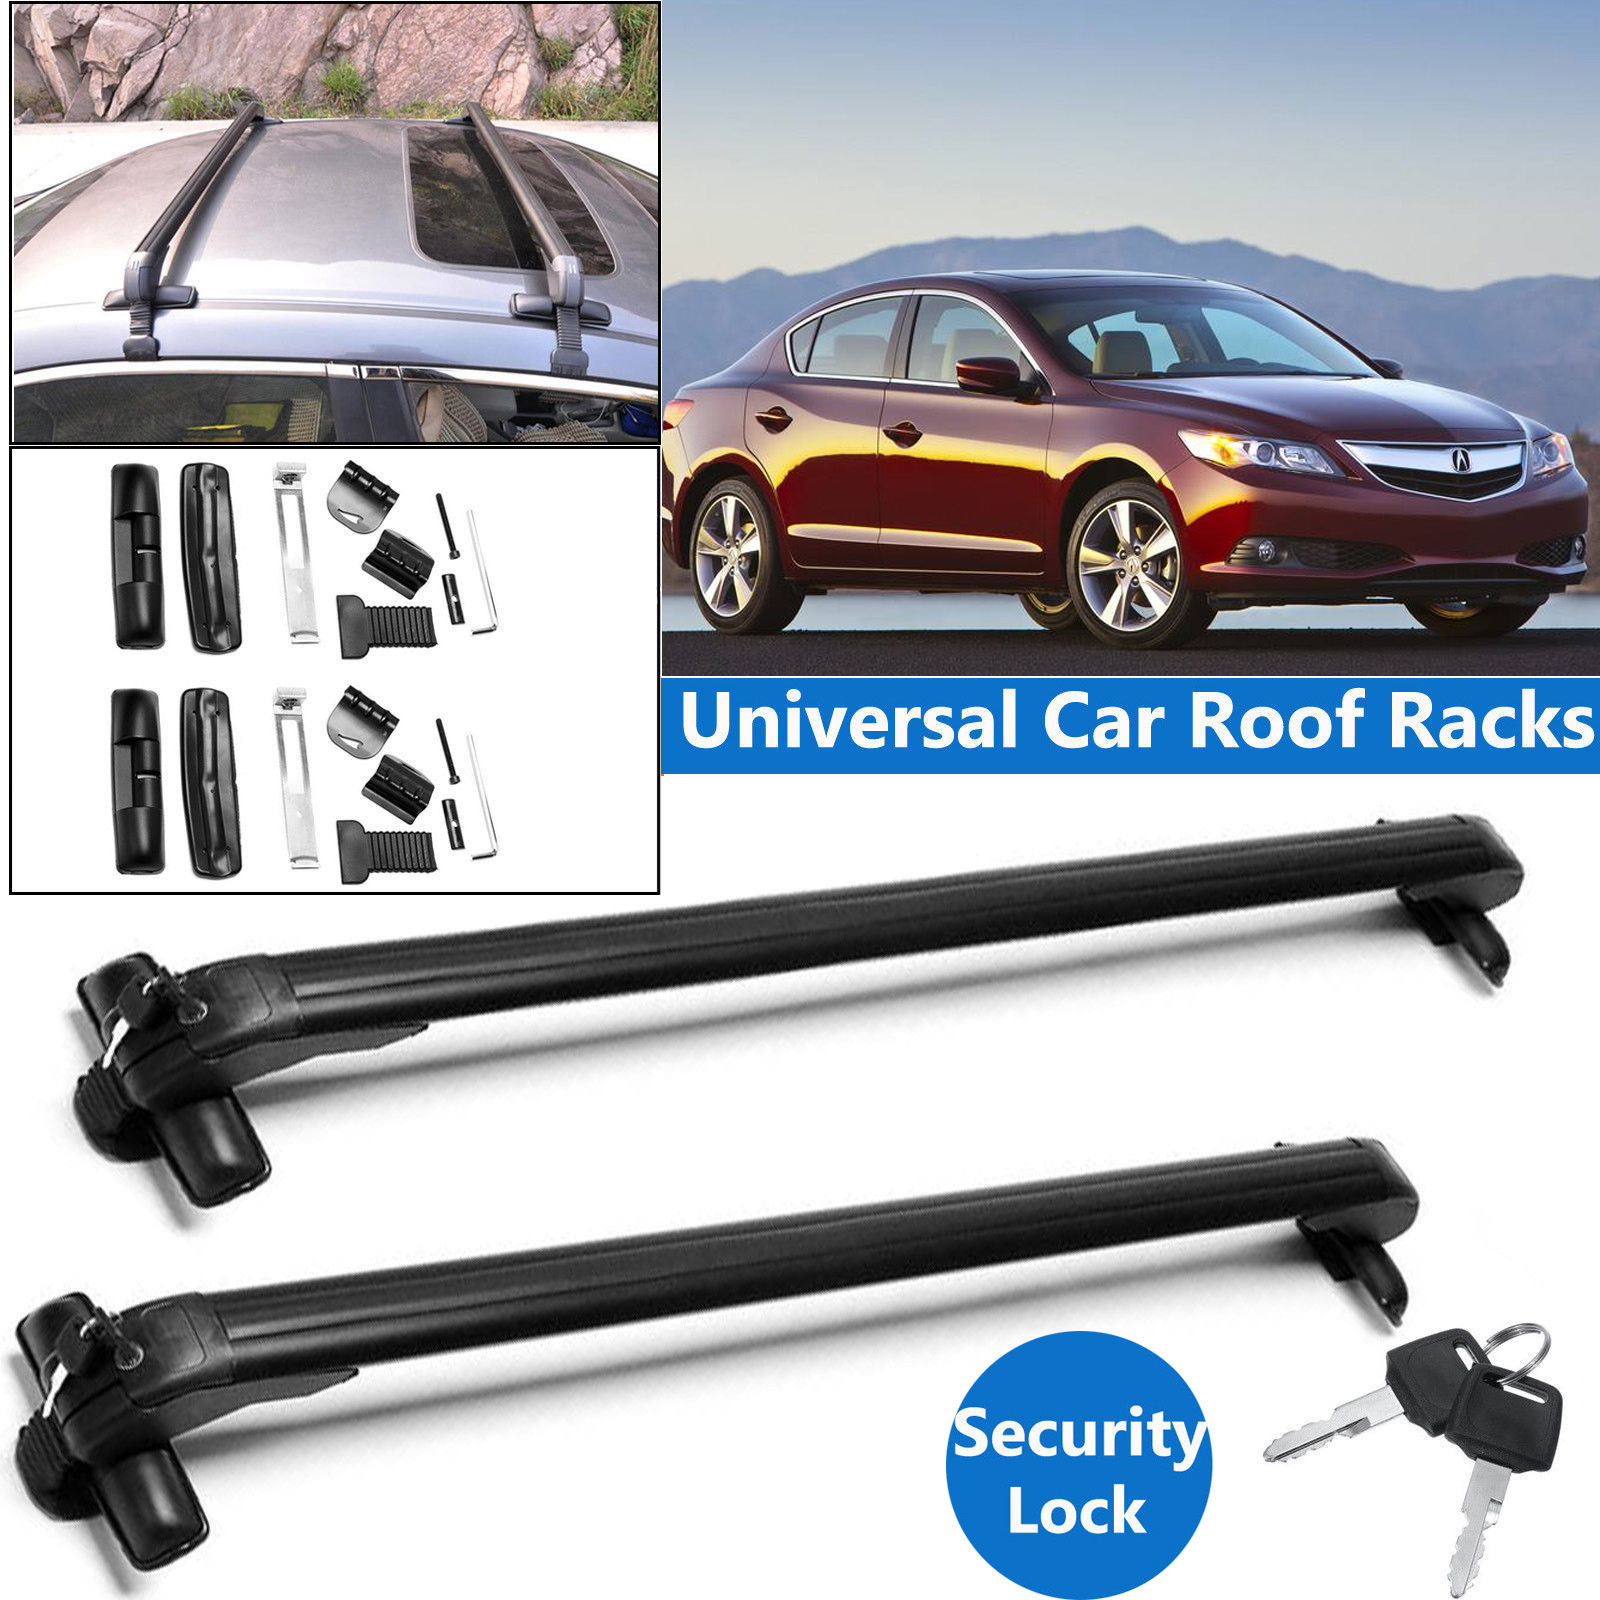 For Acura ILX / RDX / RLX / TL / TSX / RL Car Roof Rack 43